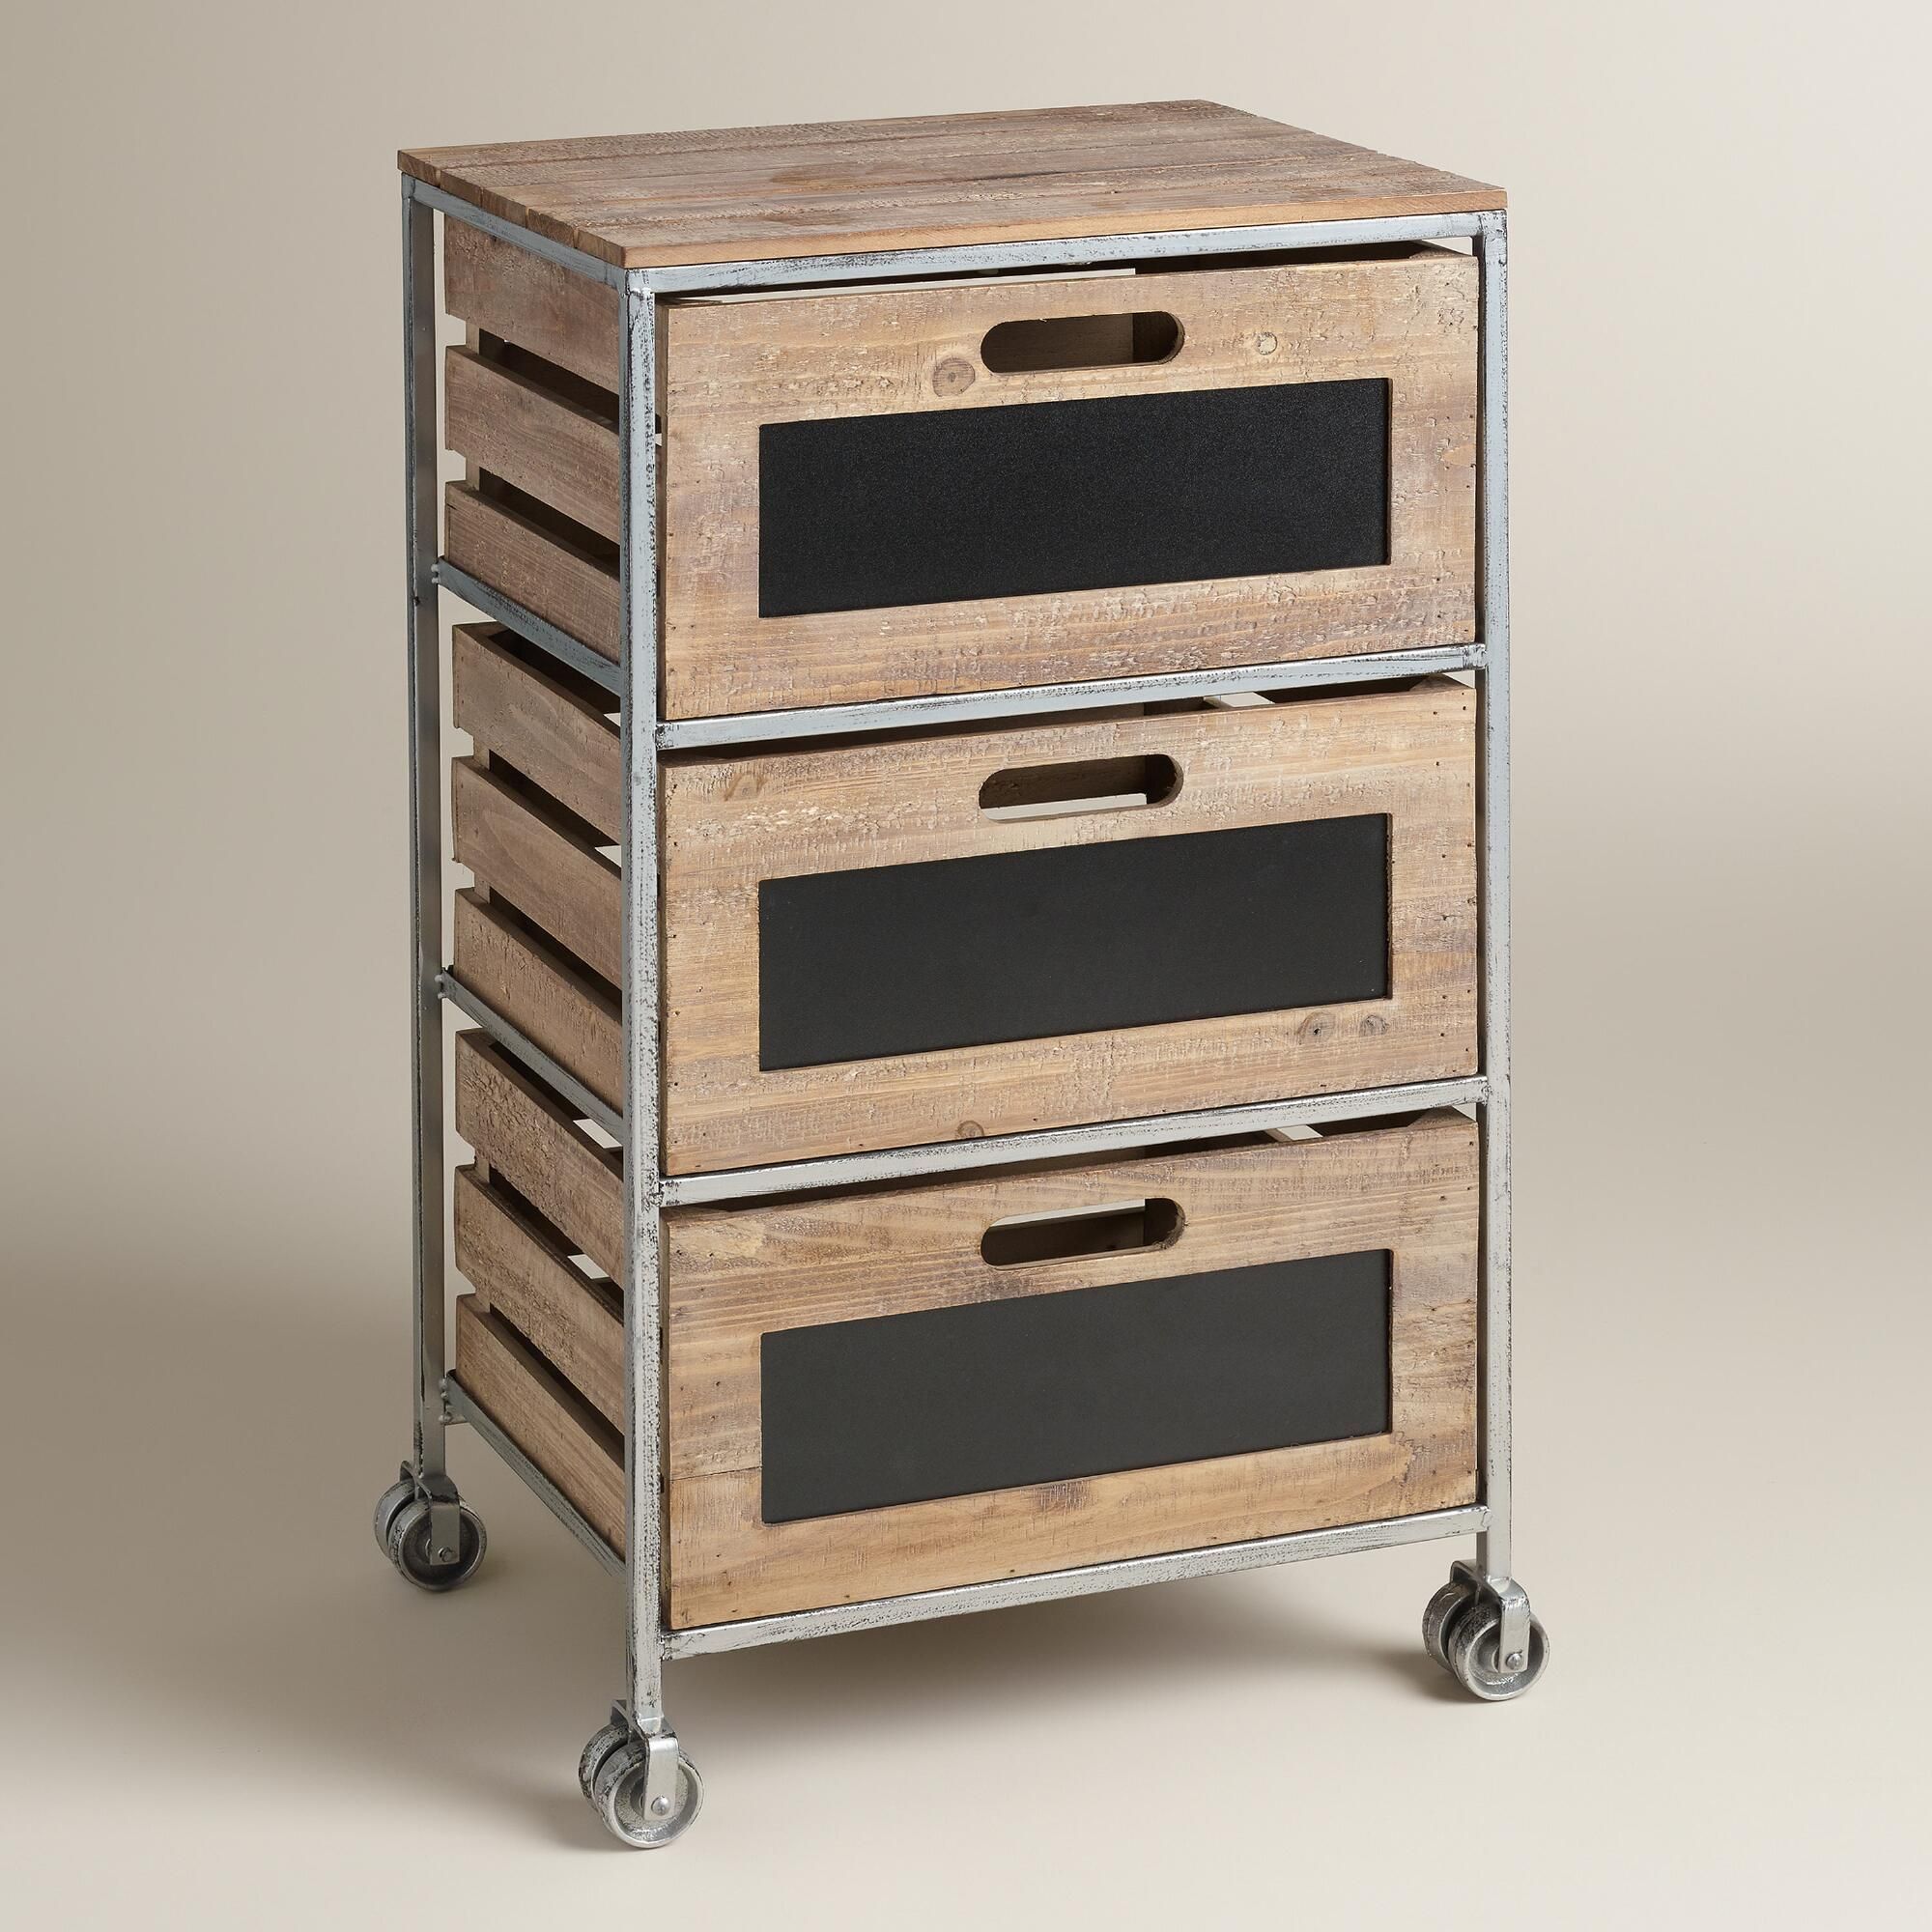 microwave kitchen drawer with beech cabinet and wheels wood drawers storage pin cart